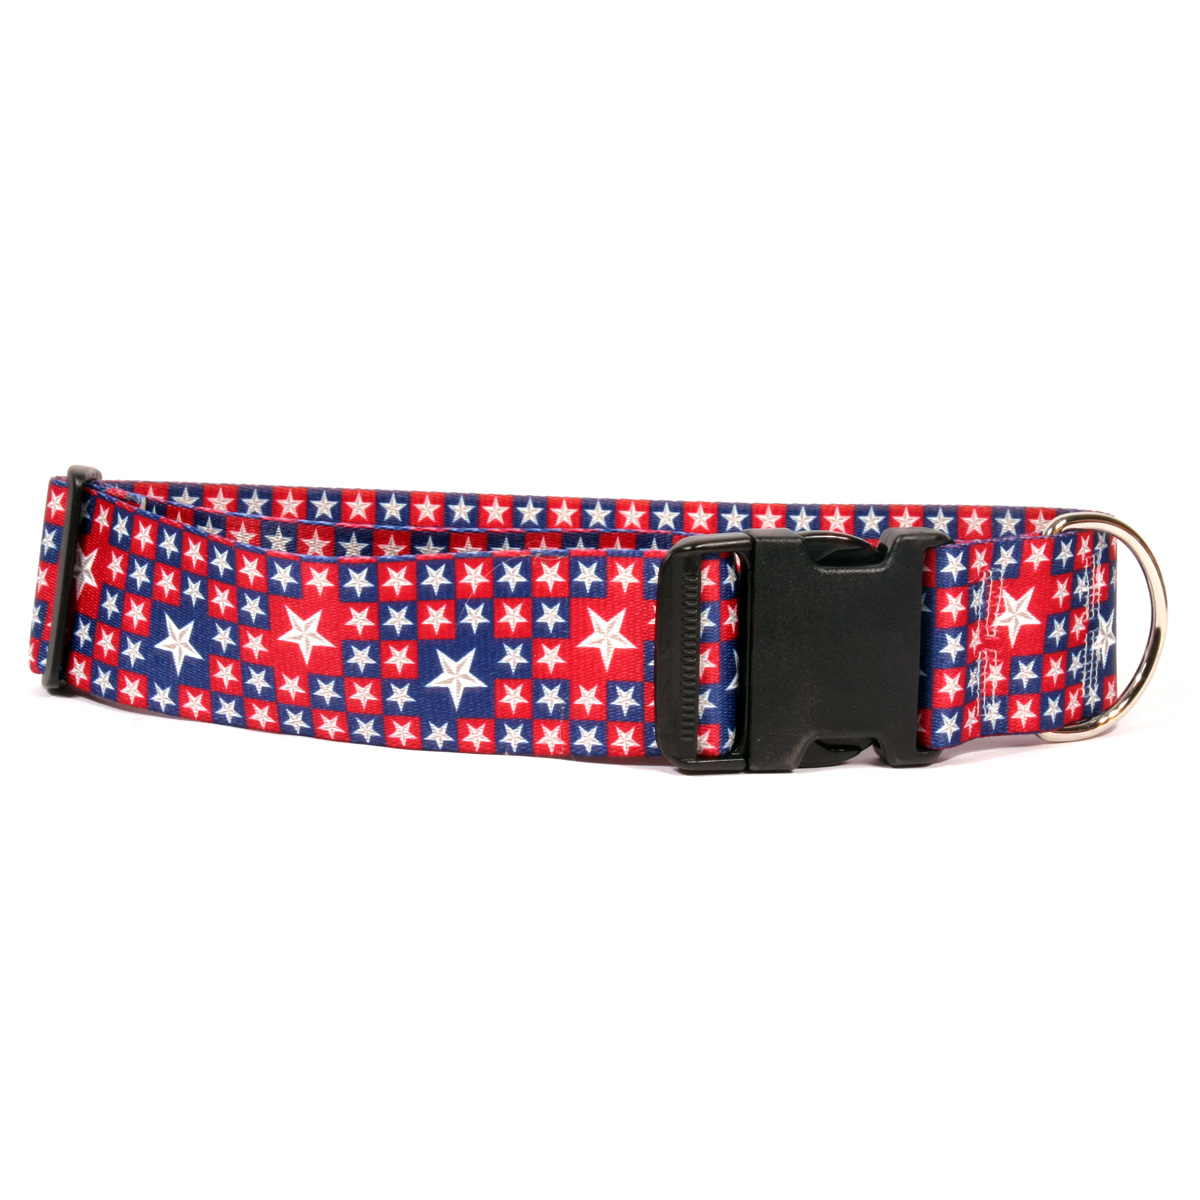 2 Inch Wide Colonial Stars Dog Collar